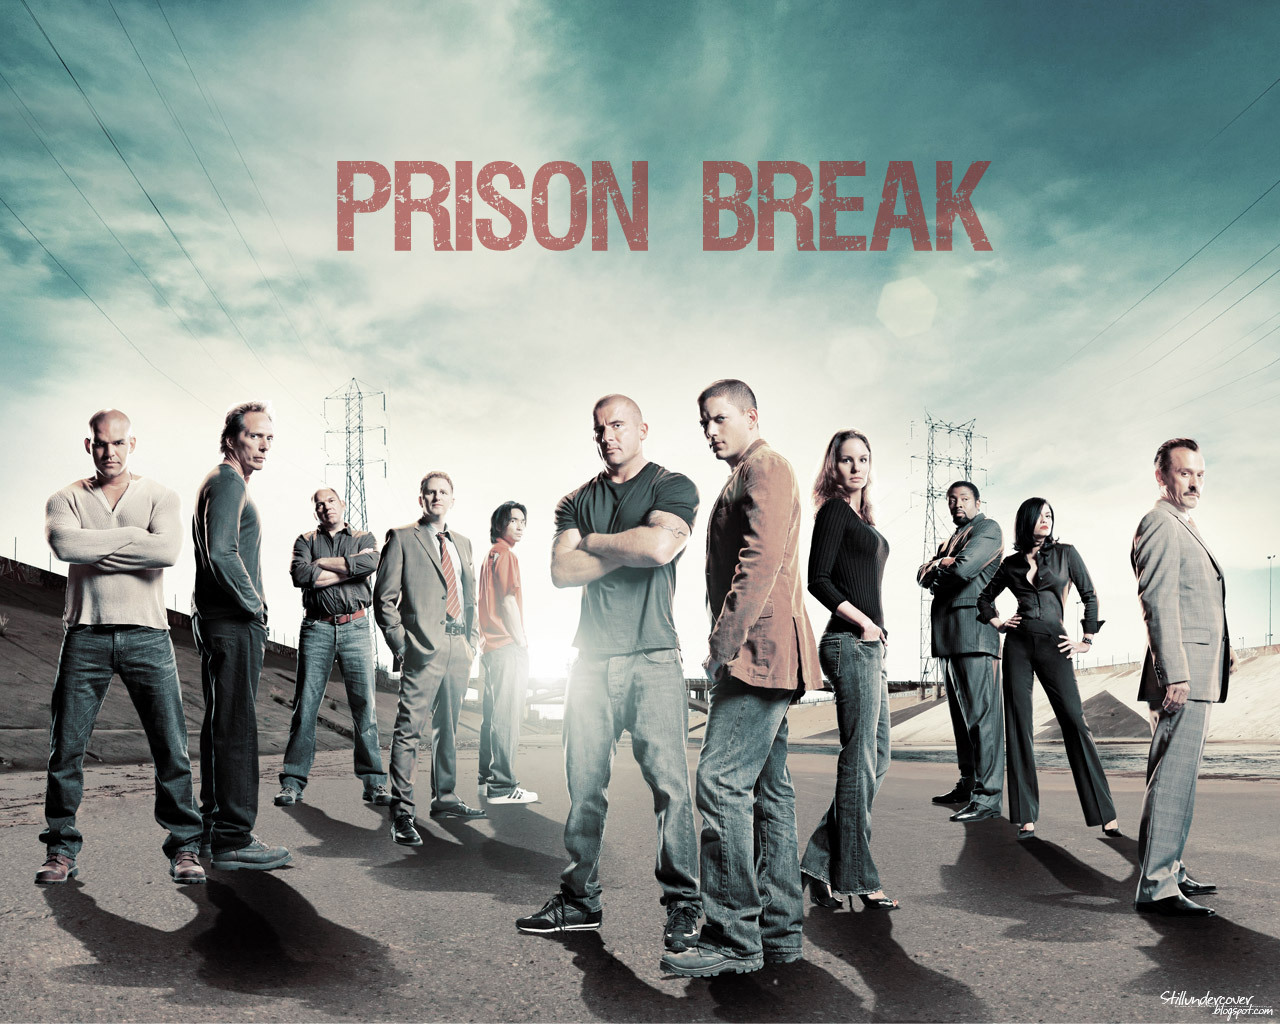 ... background with Prison Break Wallpaper HD is a necessary element that can stylish additionally your personal computer, laptop, mobile phone or tablet.